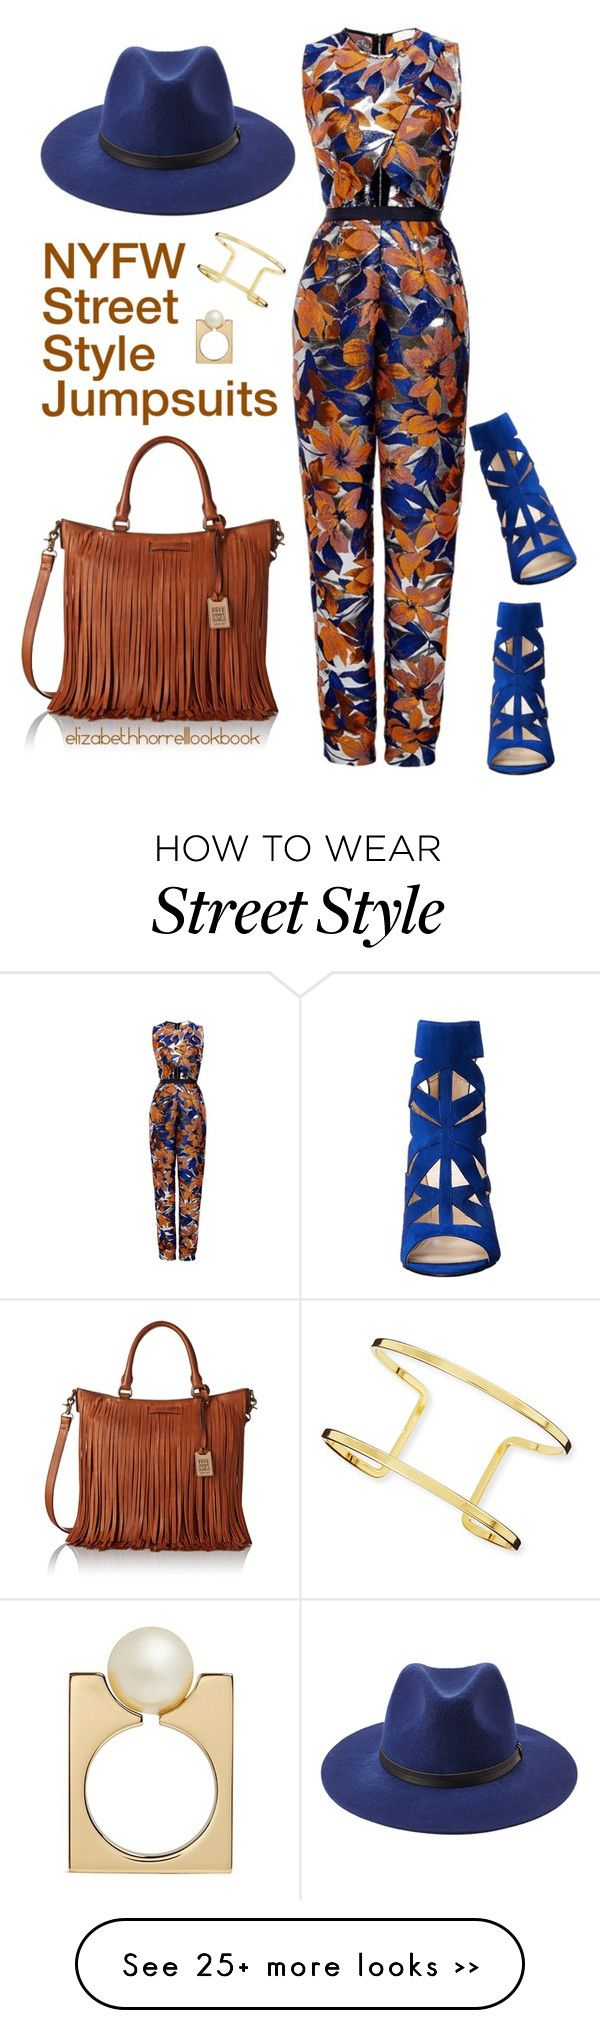 """NYFW Street Style Jumpsuits"" by elizabethhorrell on Polyvore featuring moda, Kaelen, Forever 21, Nine West, Frye, Jules Smith e Chloé"